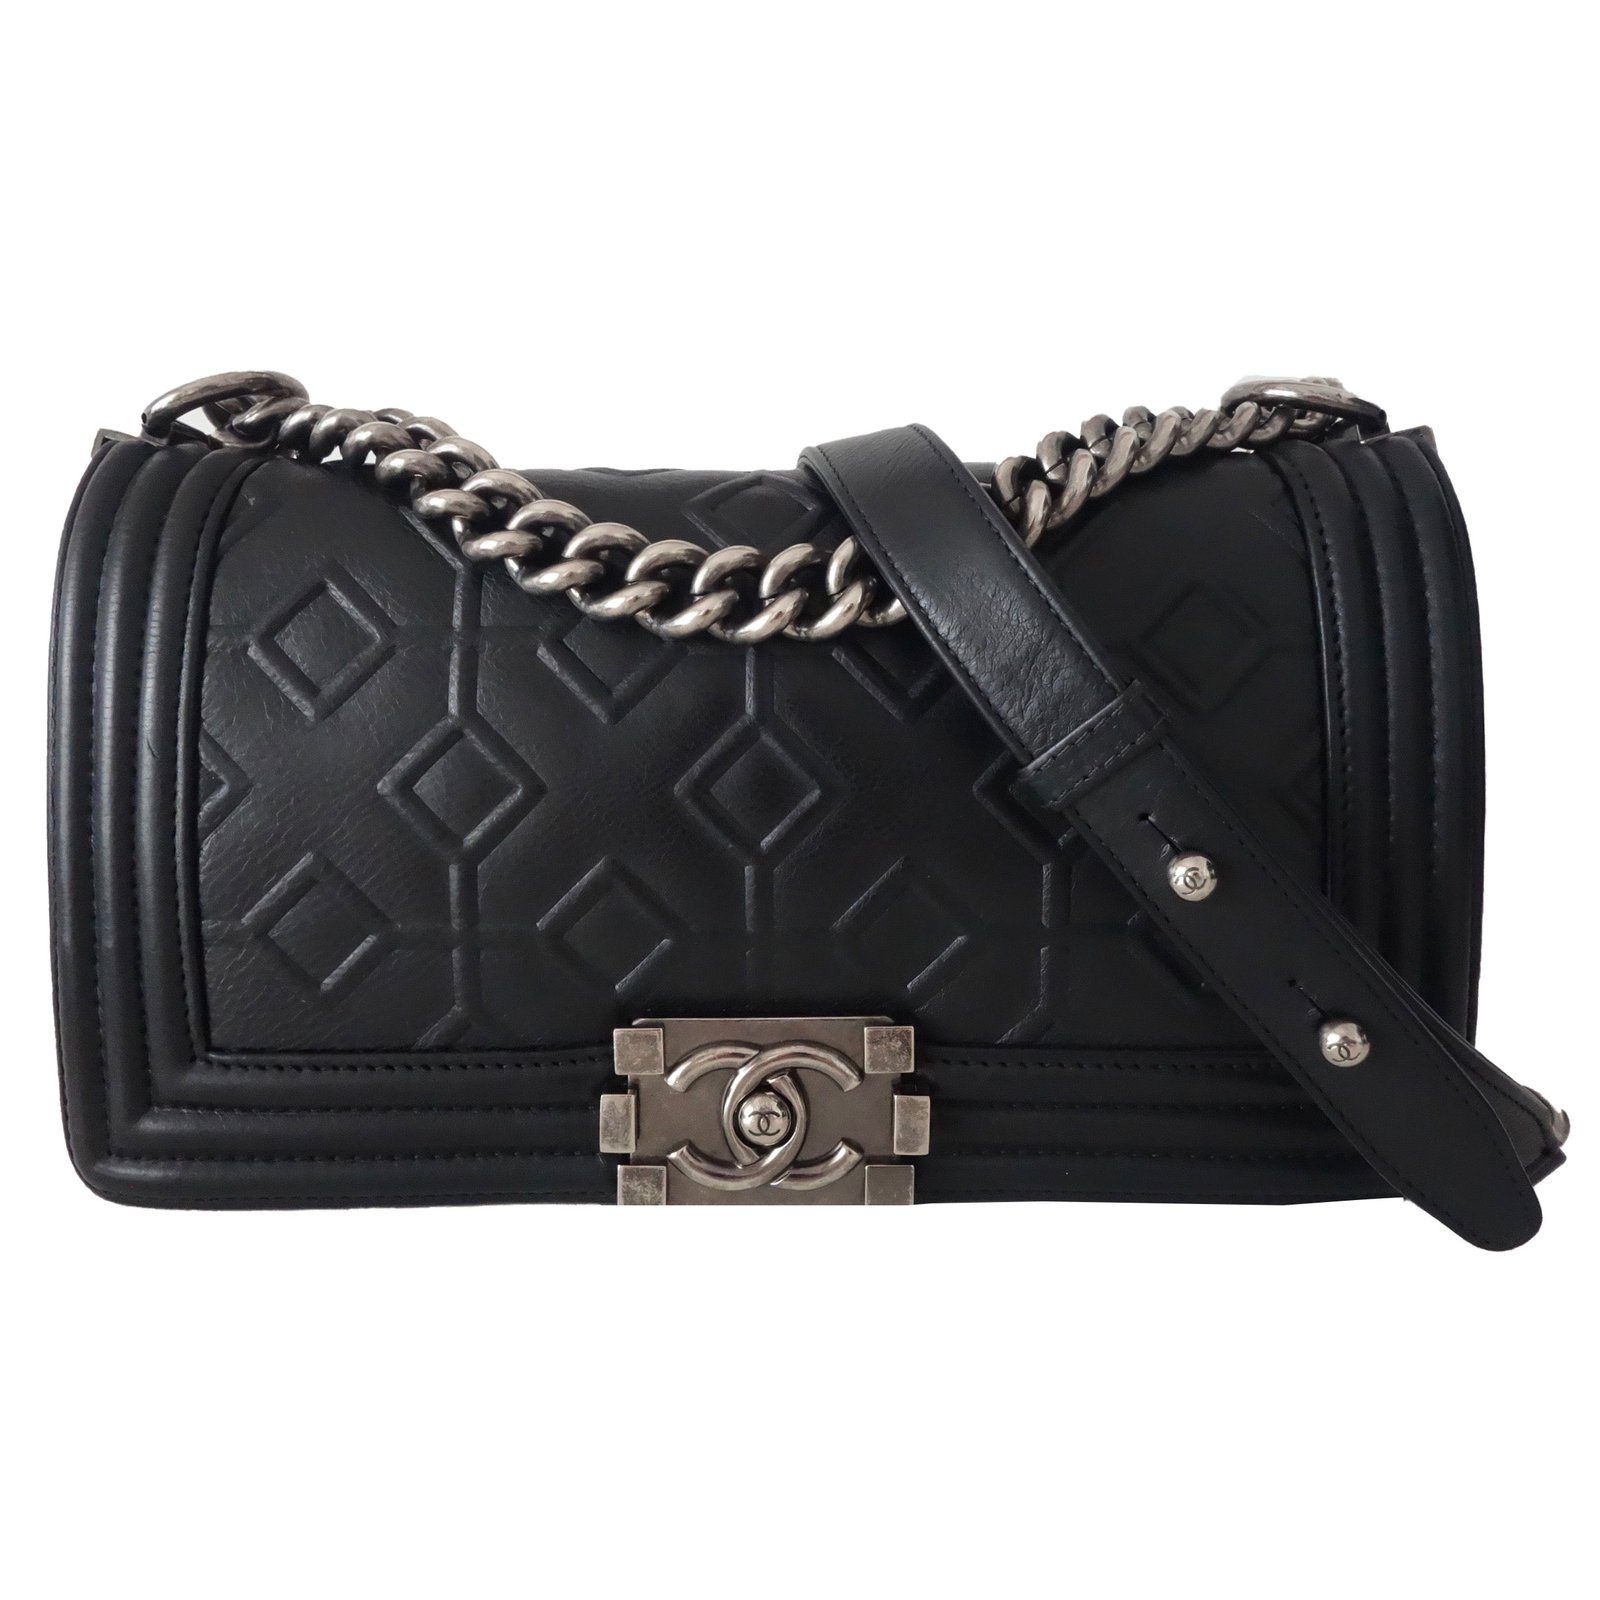 06045632bdc6 Chanel Boy Bag Handbags Leather Black ref.54245 - Joli Closet